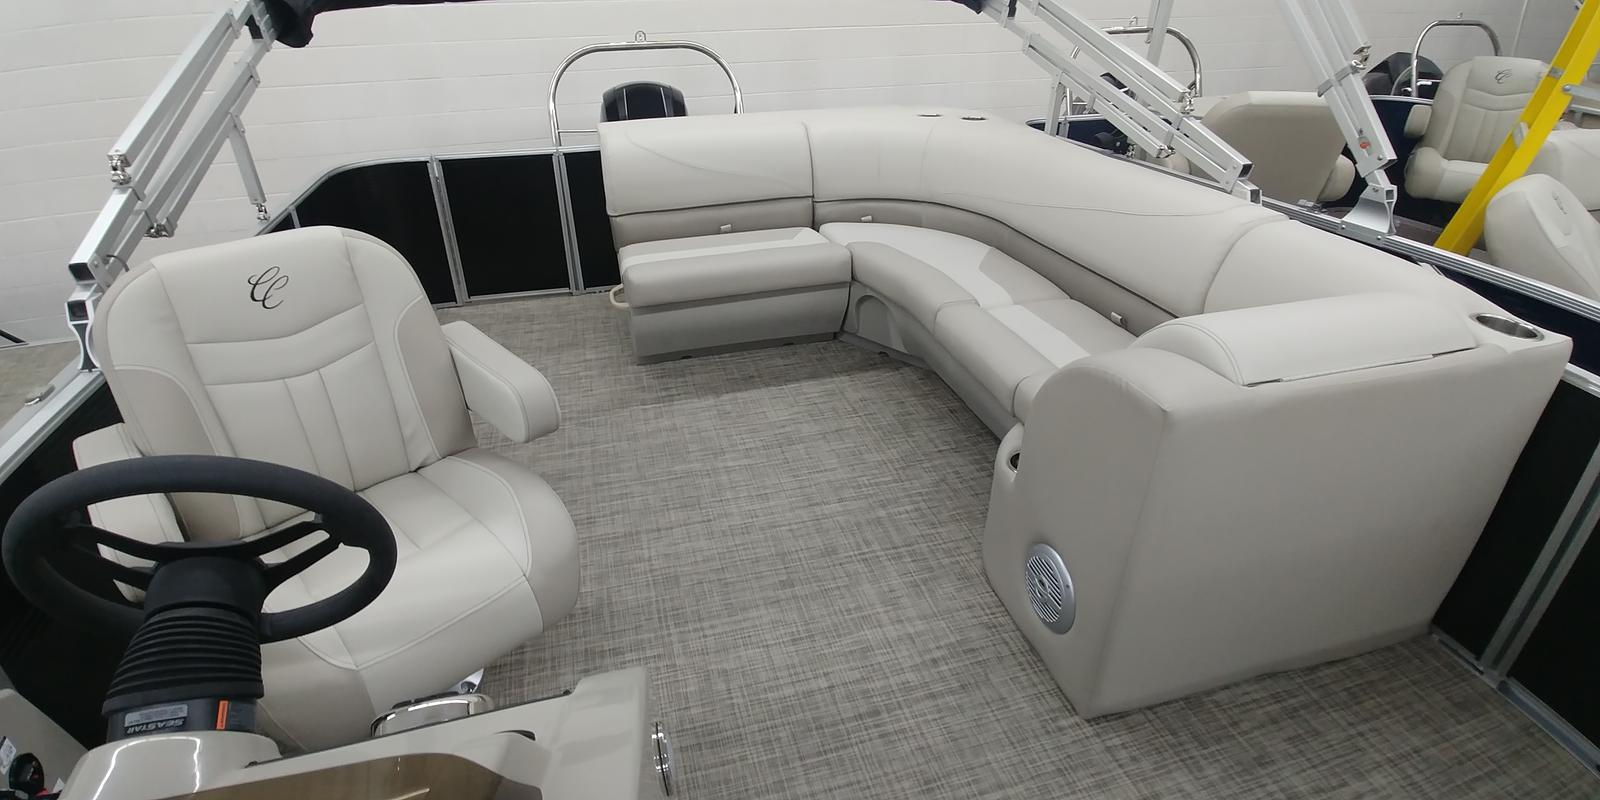 2019 Cypress Cay boat for sale, model of the boat is 232 Seabreeze CST & Image # 3 of 5